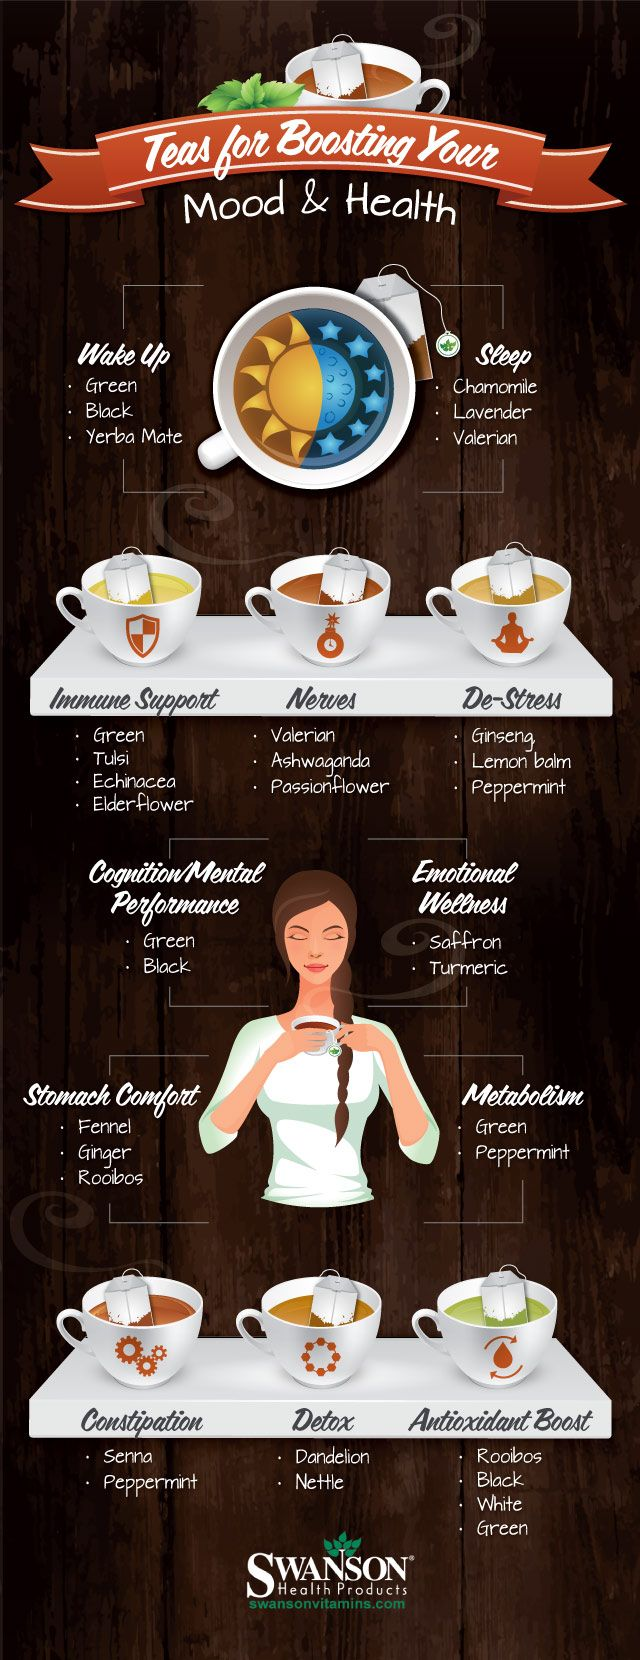 Tips to Enhance Your Mood & Health with Tea infographic